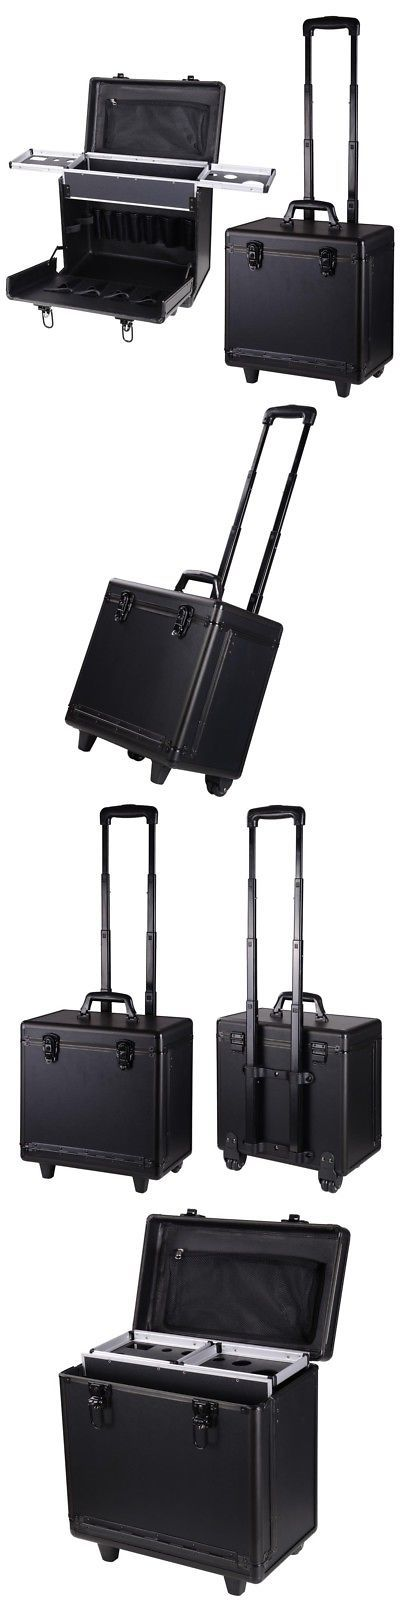 Rolling Makeup Cases: Pvc Hair Makeup Train Case Baber Salon Clipper Trimmer Tool Appliance Box Black -> BUY IT NOW ONLY: $53.99 on eBay!